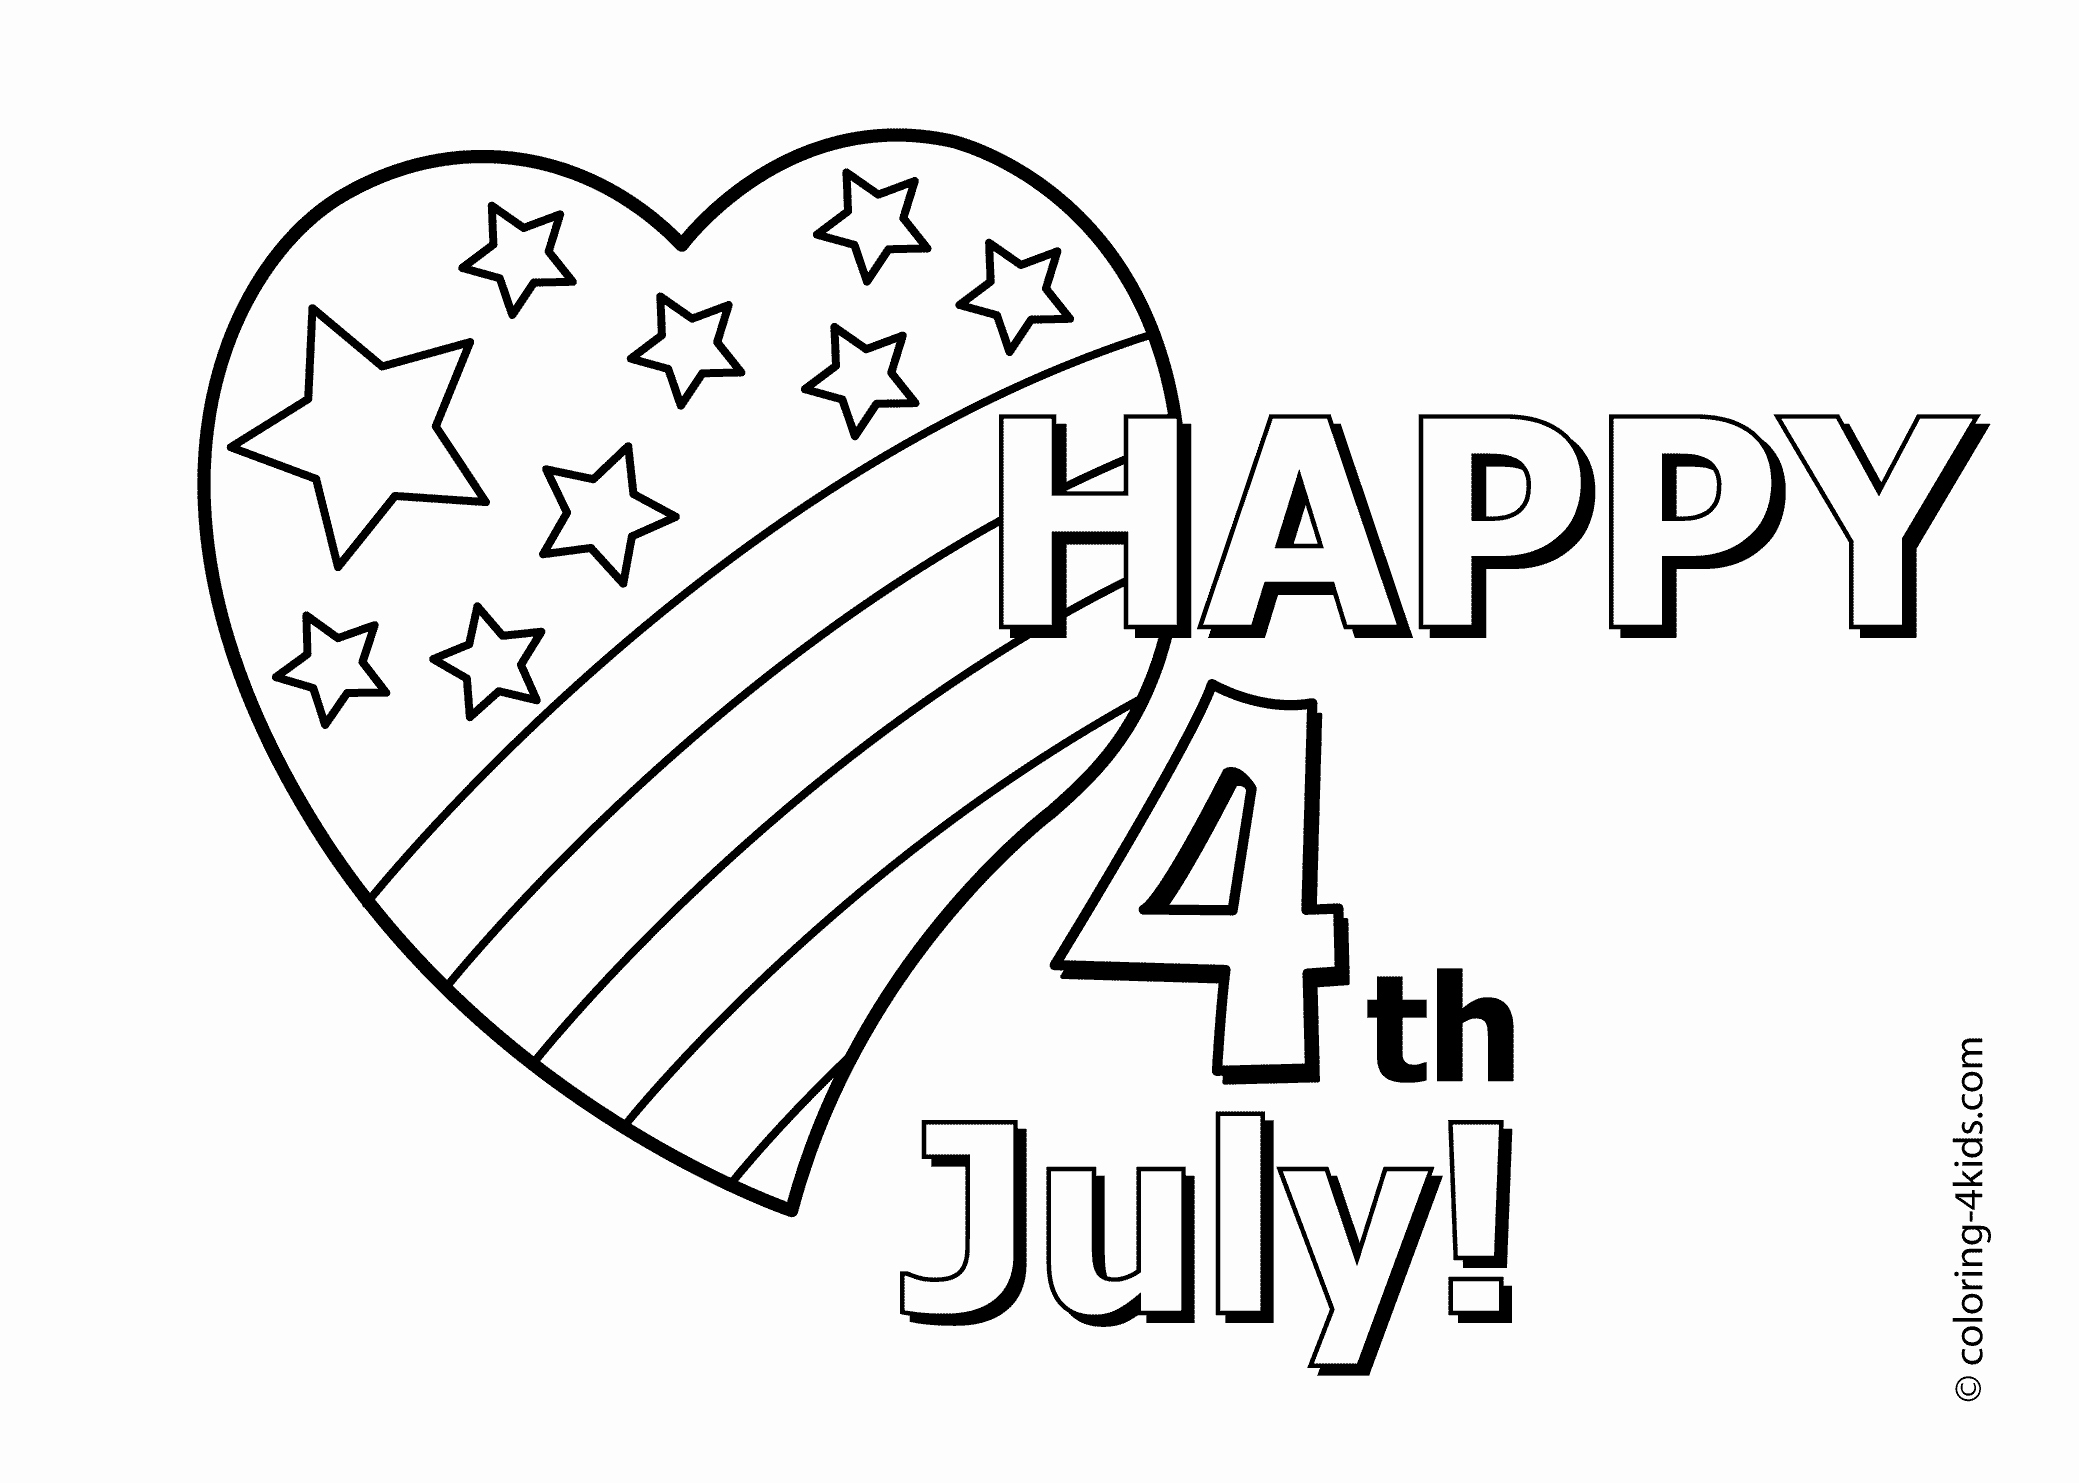 4th July Printable Coloring Pages Fresh Made By Joel Free Download Of Whitehouse